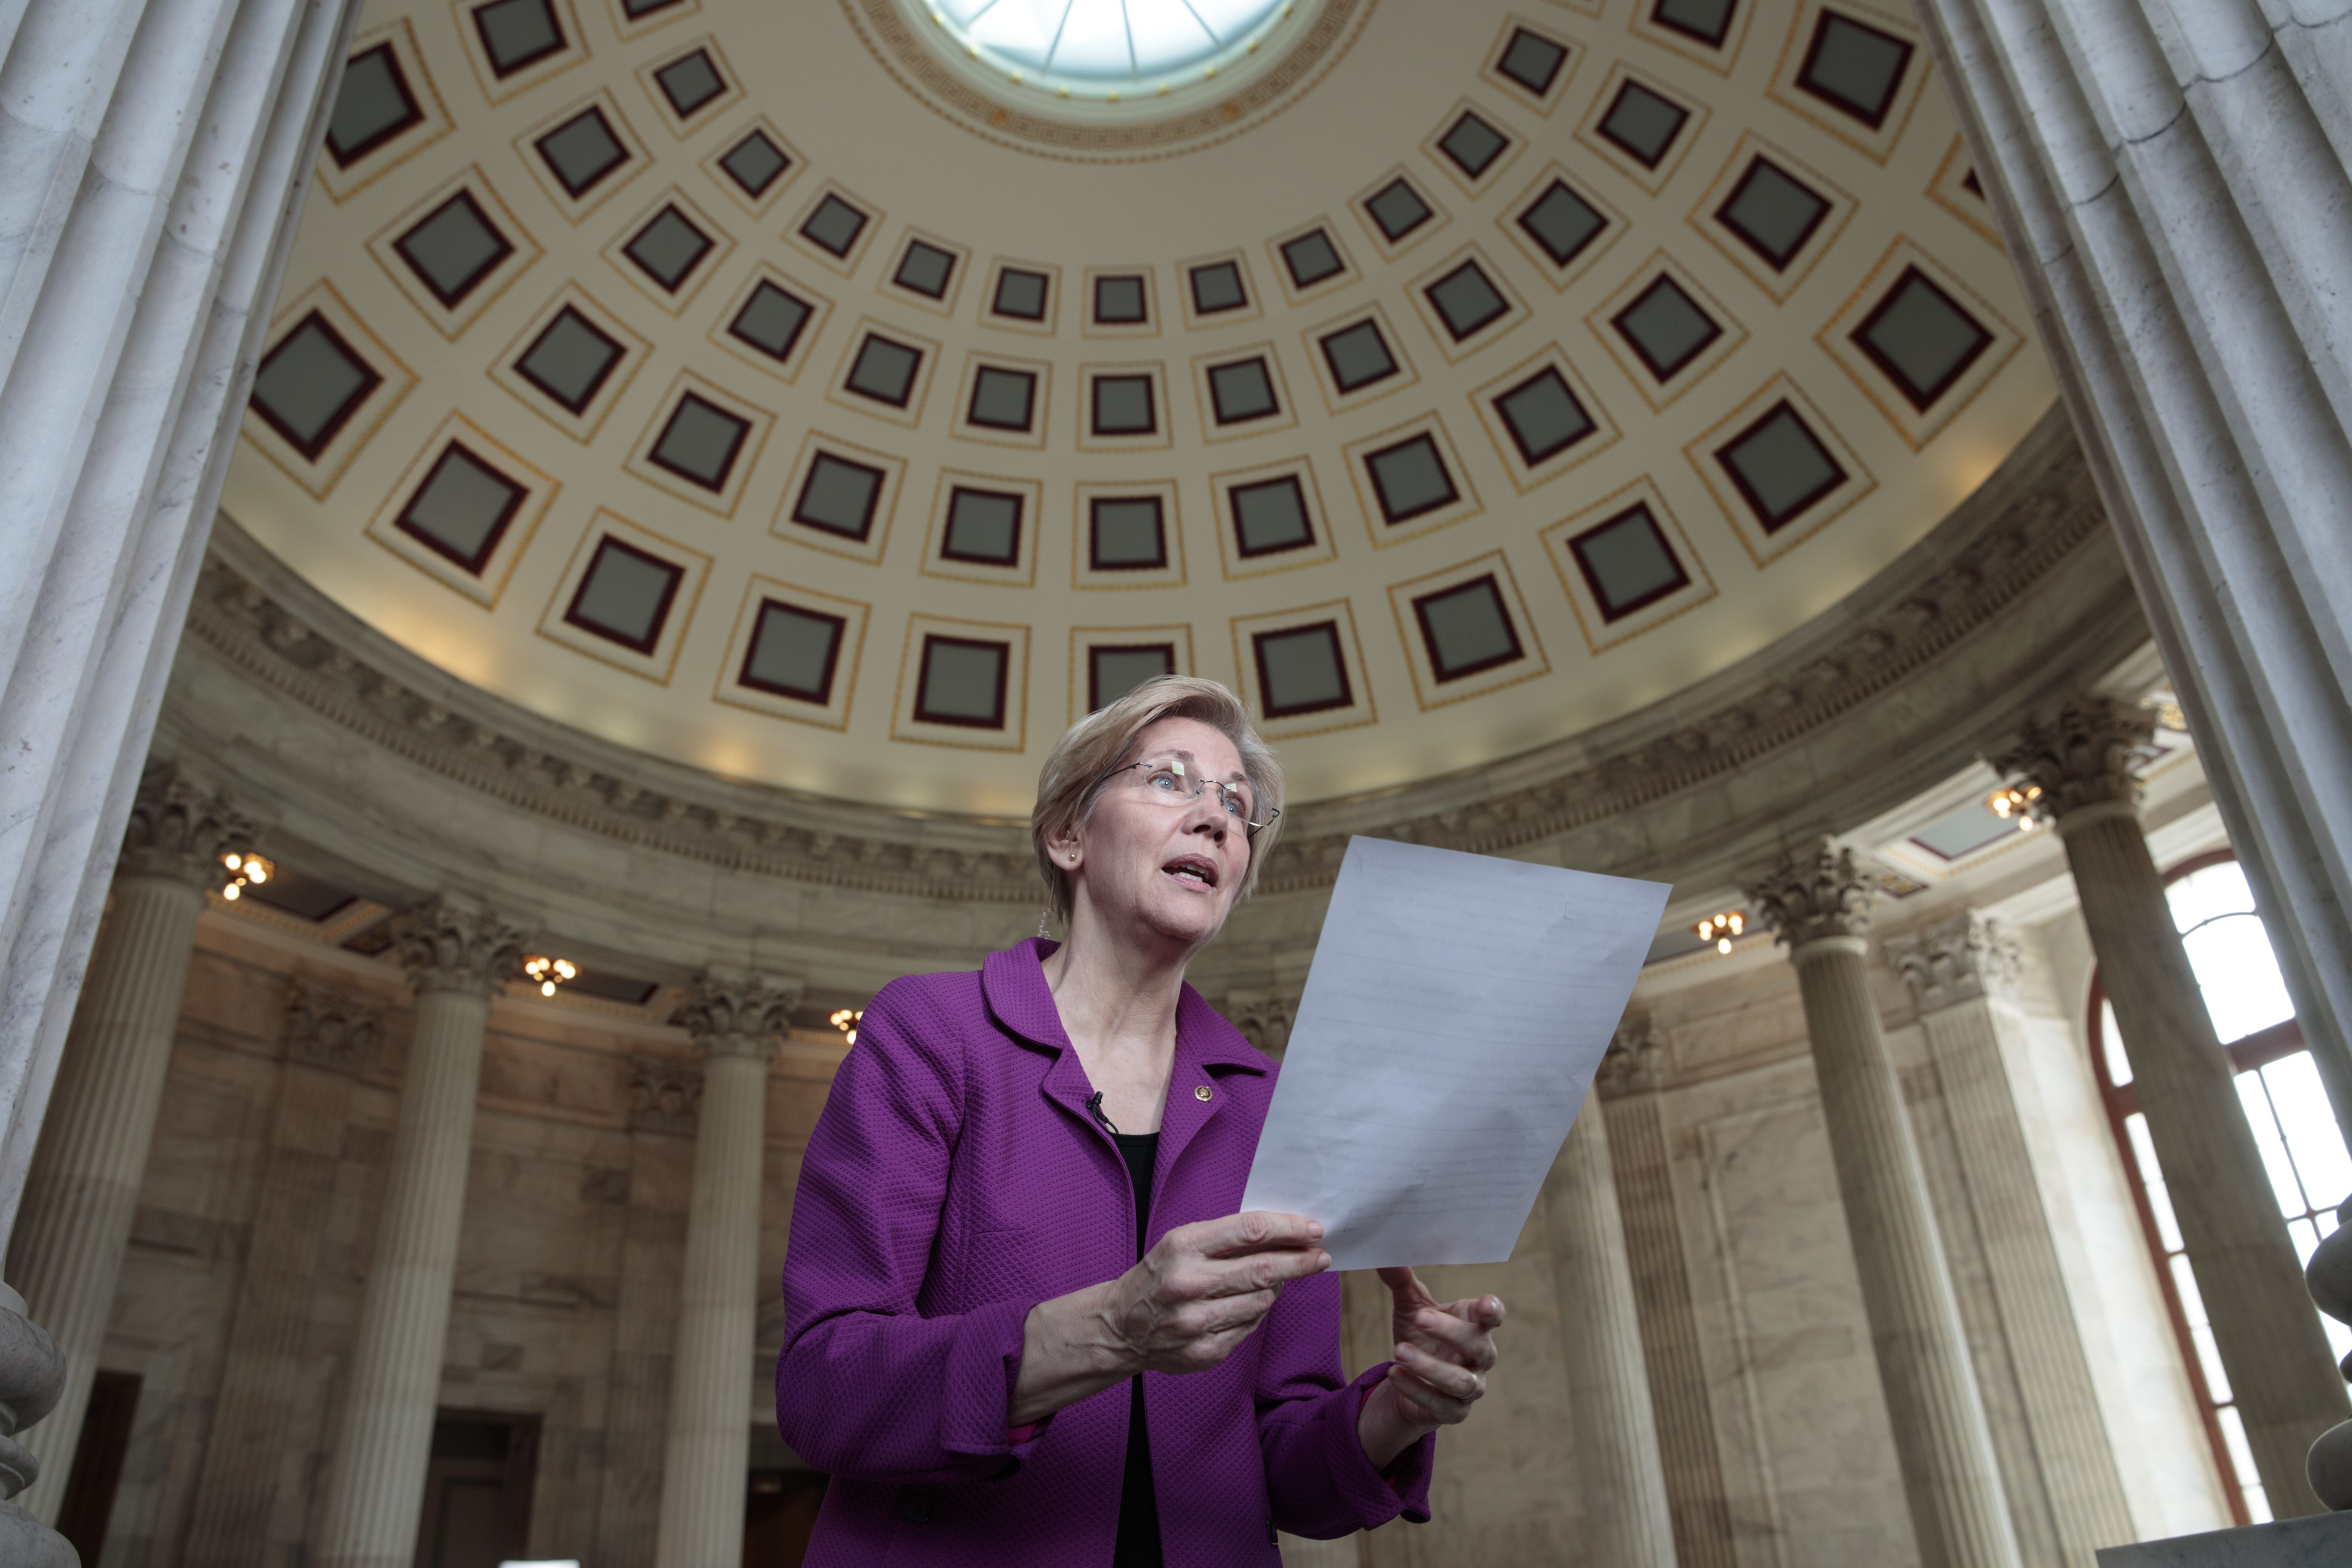 Holding a transcript of her speech in the Senate Chamber, Massachusetts Sen. Elizabeth Warren reacts to being rebuked by Senate leadership and accused of impugning a fellow senator, Attorney General-designate, Alabama Sen. Jeff Sessions, on Capitol Hill in Washington, D.C. on Feb. 8, 2017.